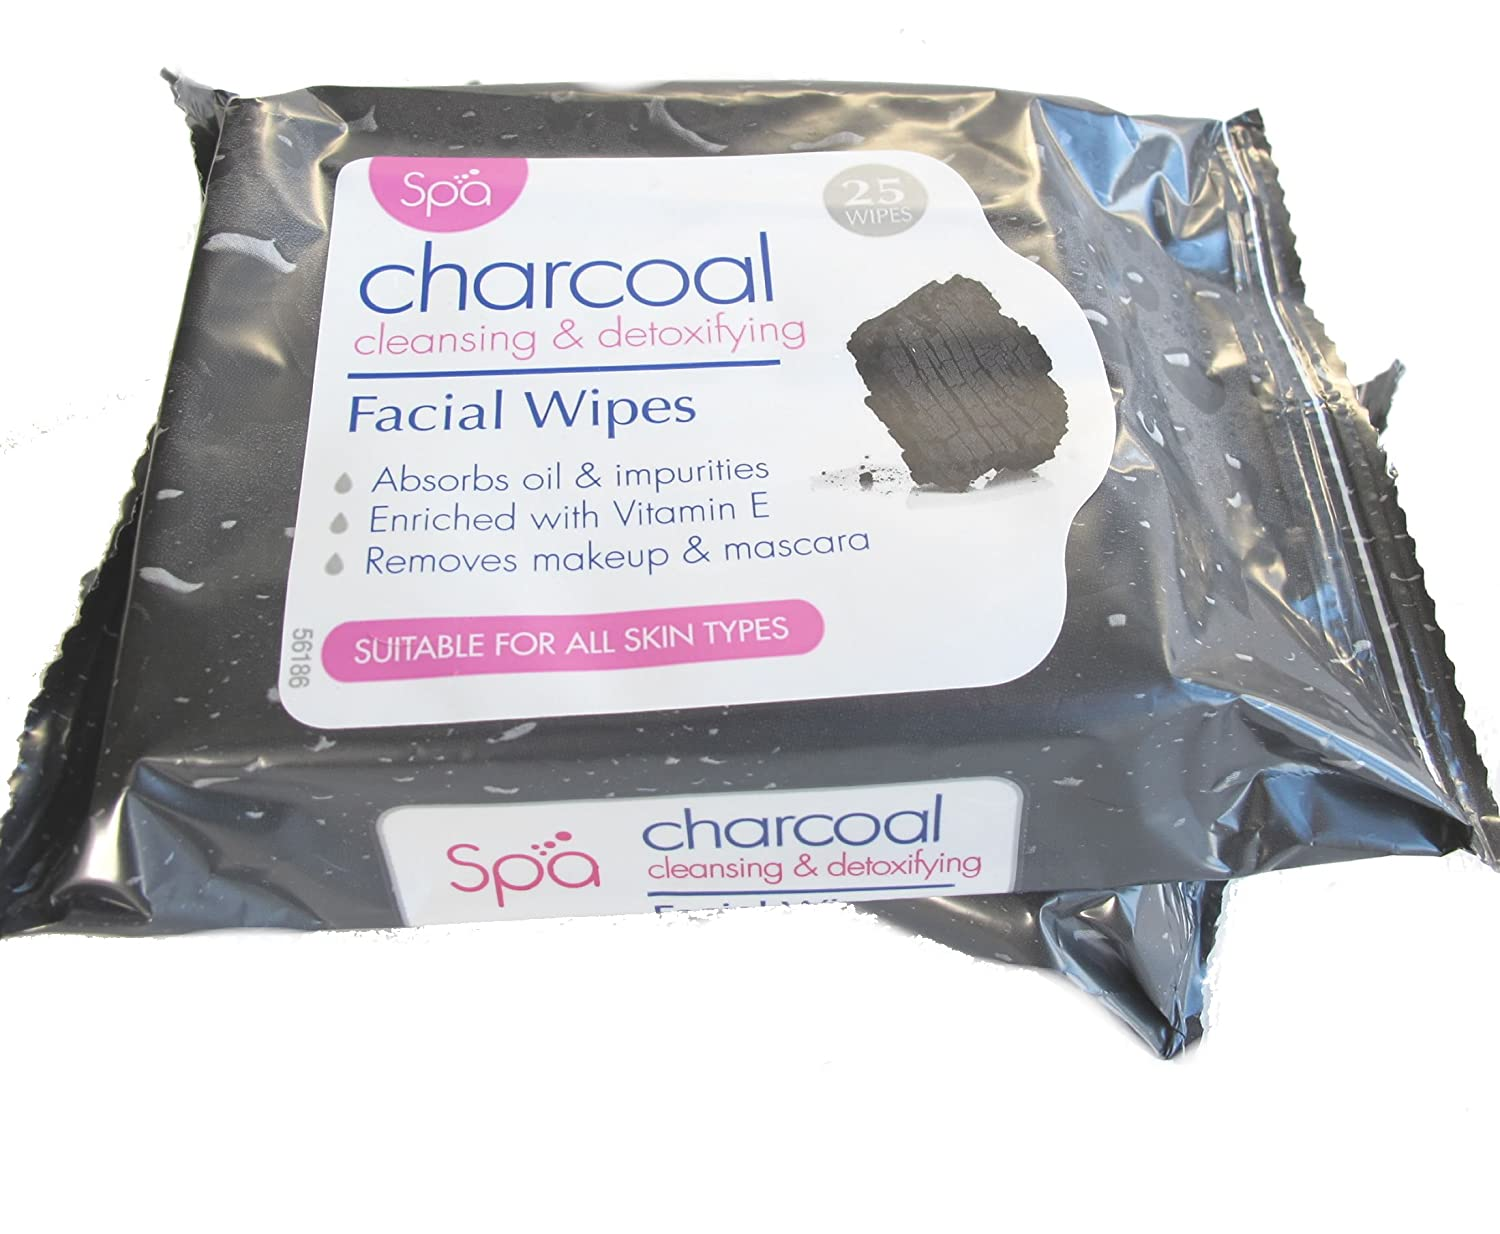 Spa Charcoal Detoxifying and Cleansing Facial Face Make Up Wipes (2 x 25 Packs) Tea Tree